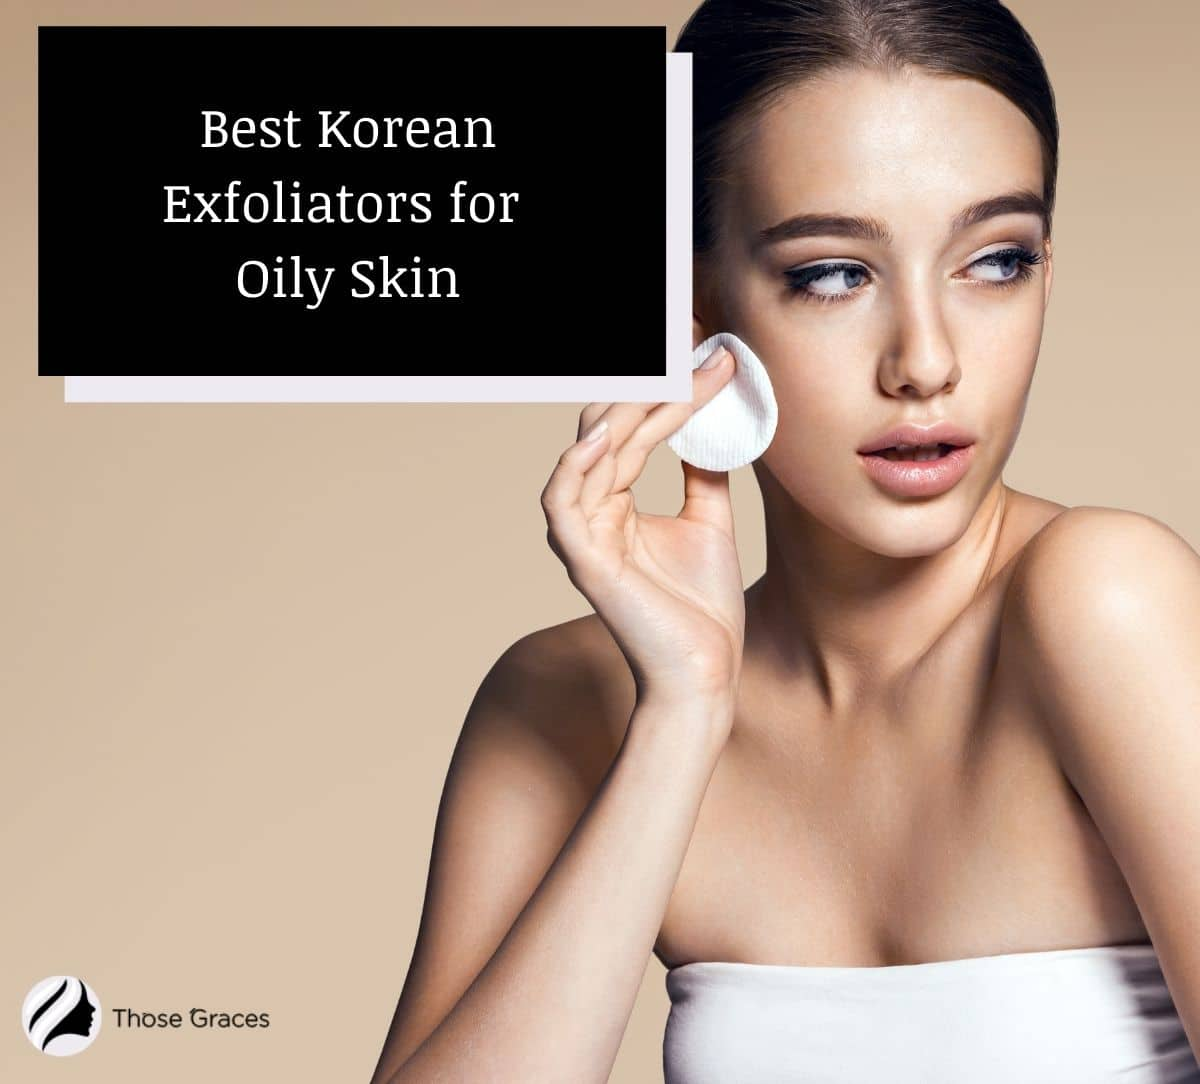 a pretty lady applying a the best Korean exfoliator for oily skin on her left cheek